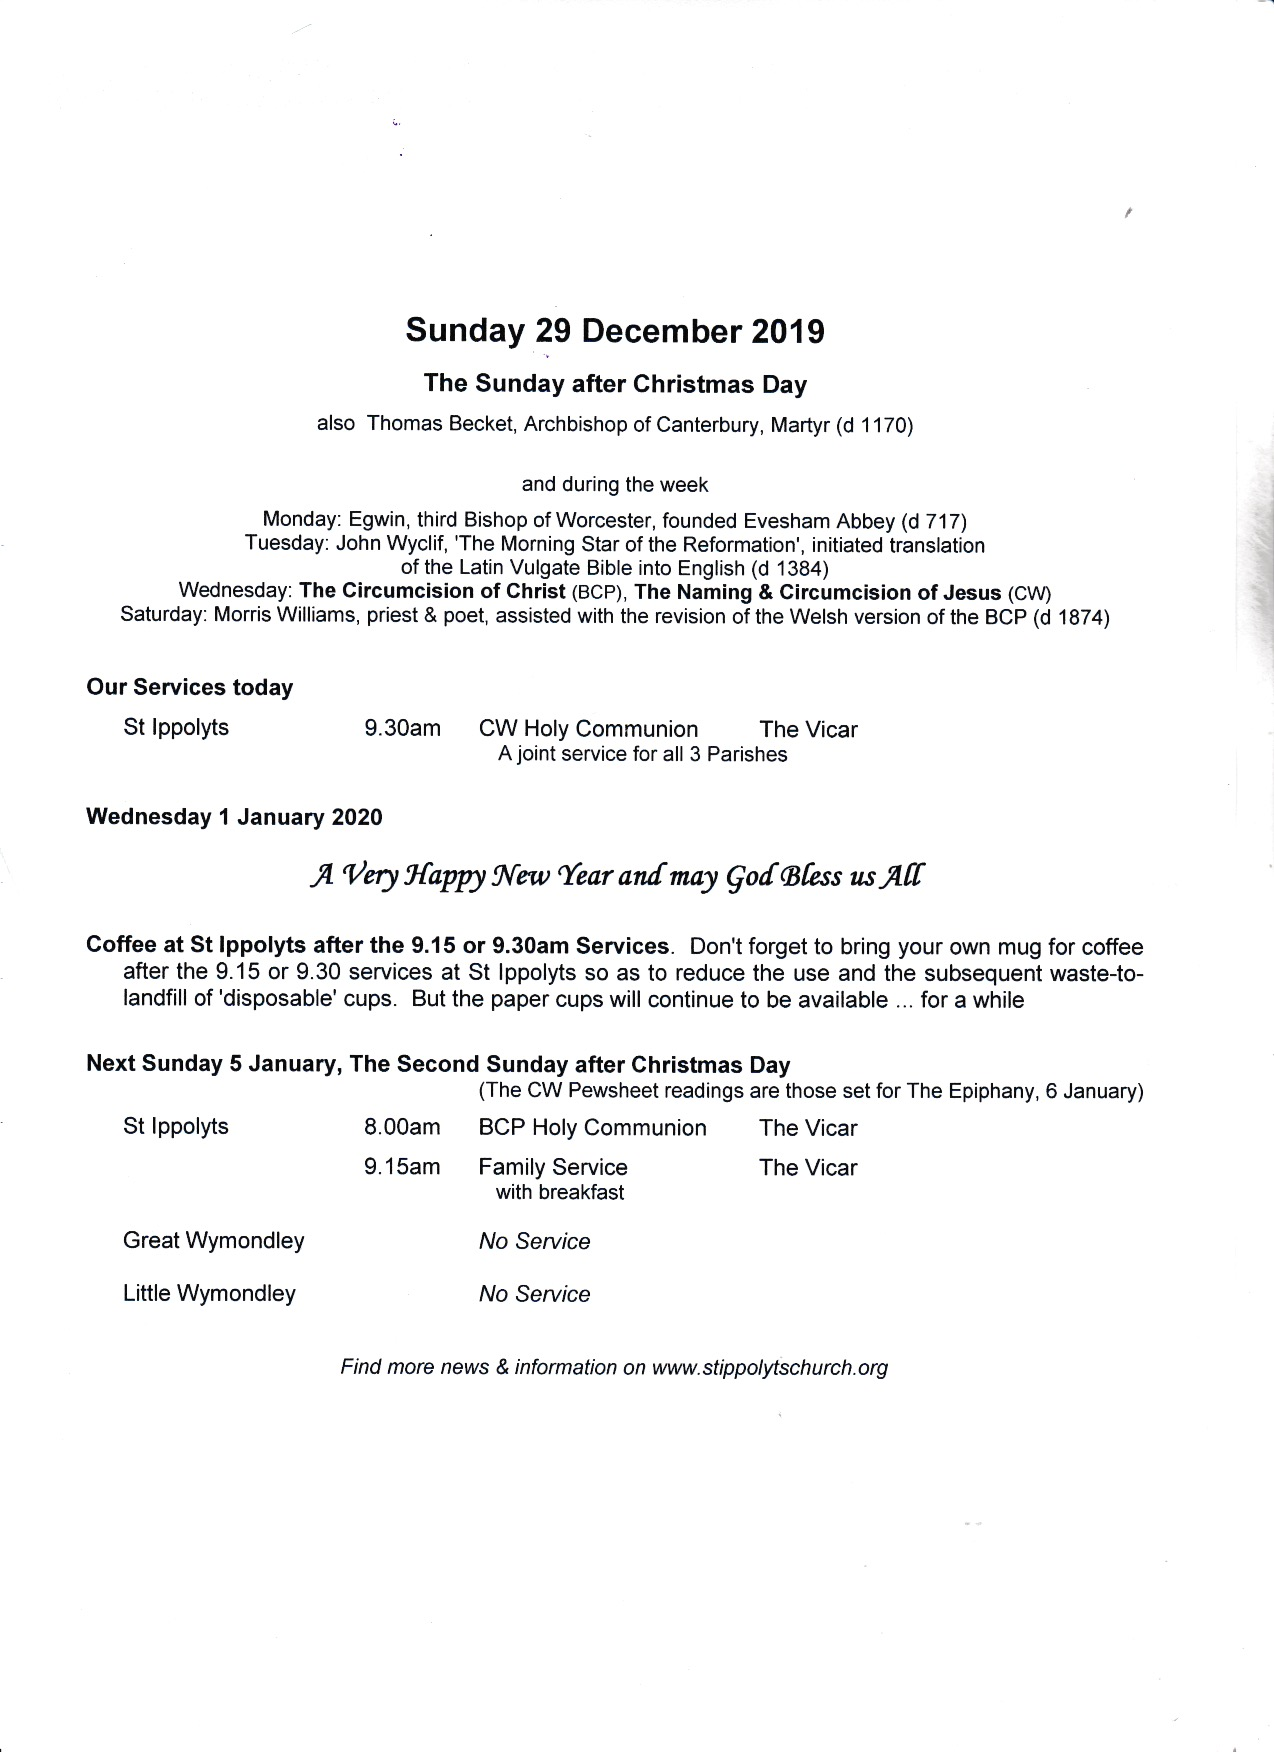 Weekly Pew Sheet, The Sunday after Christmas Day, 29th December 2019